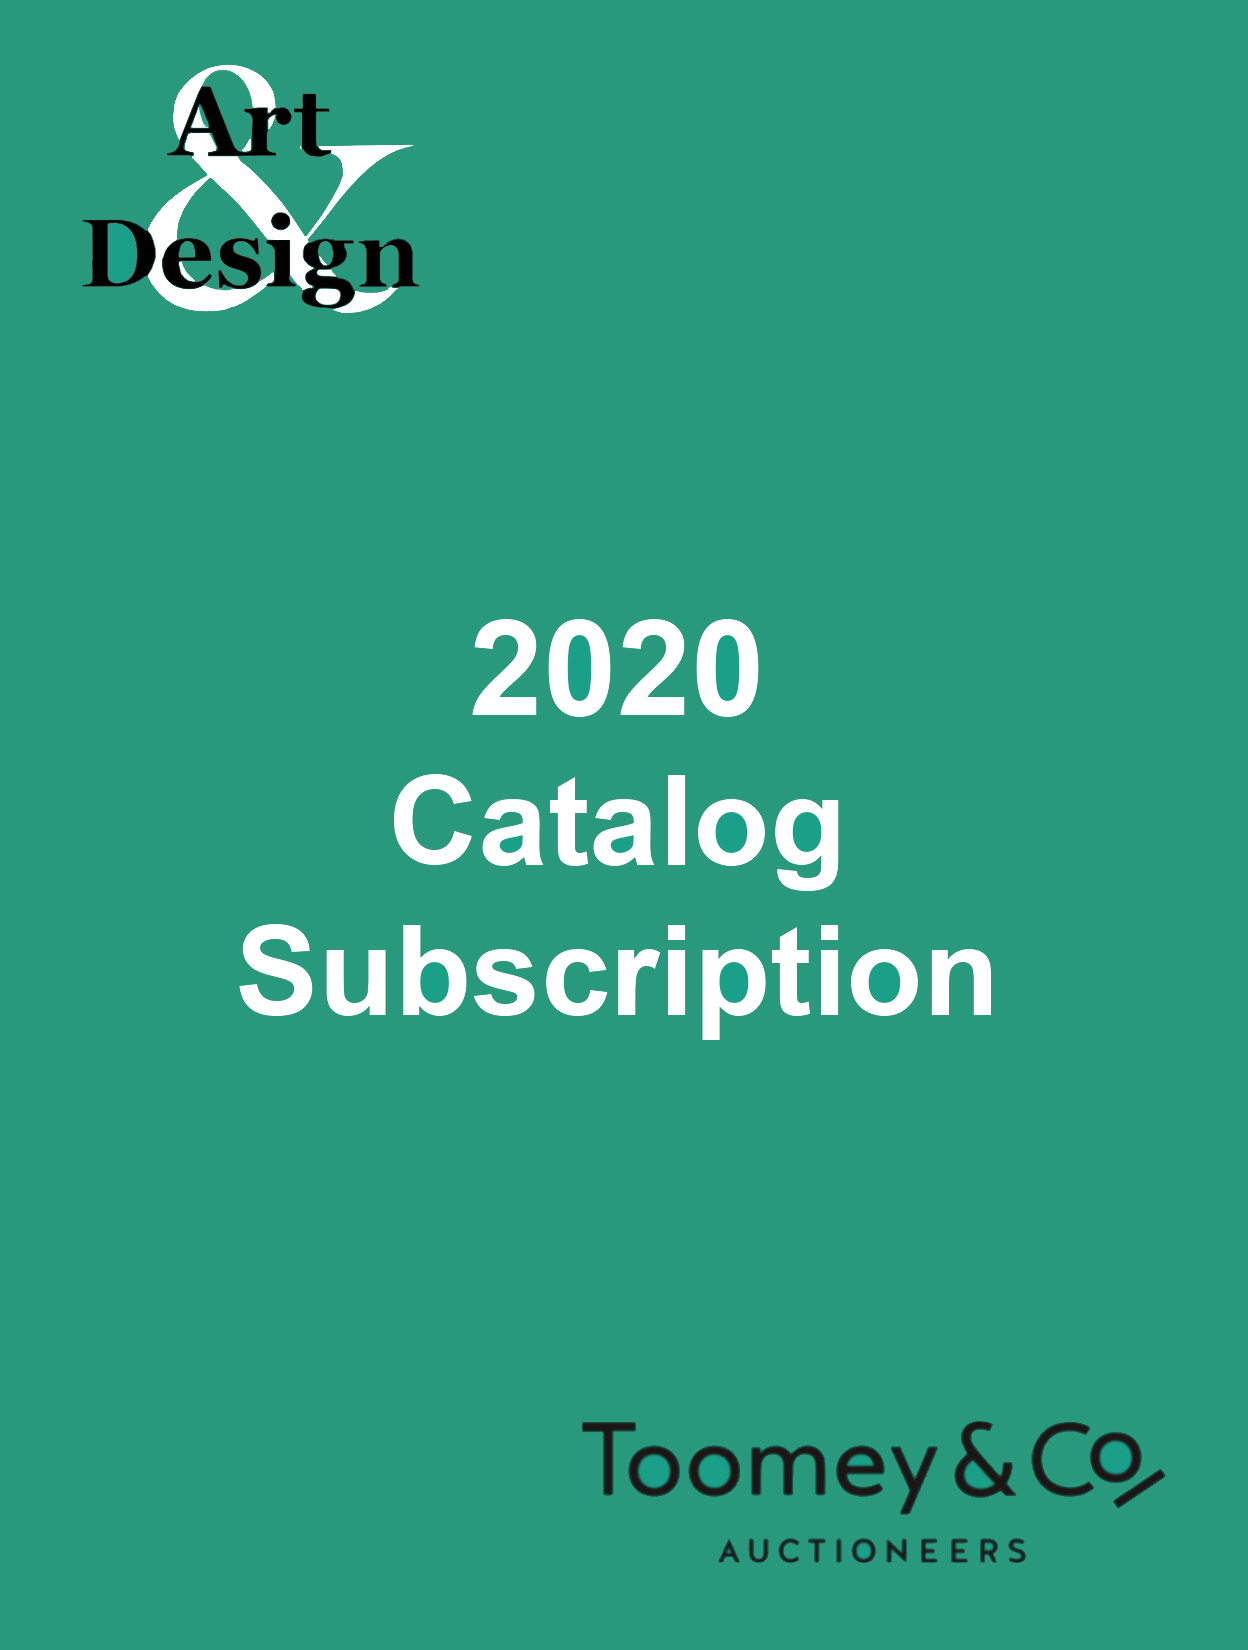 2020 Catalog Subscription, Art & Design